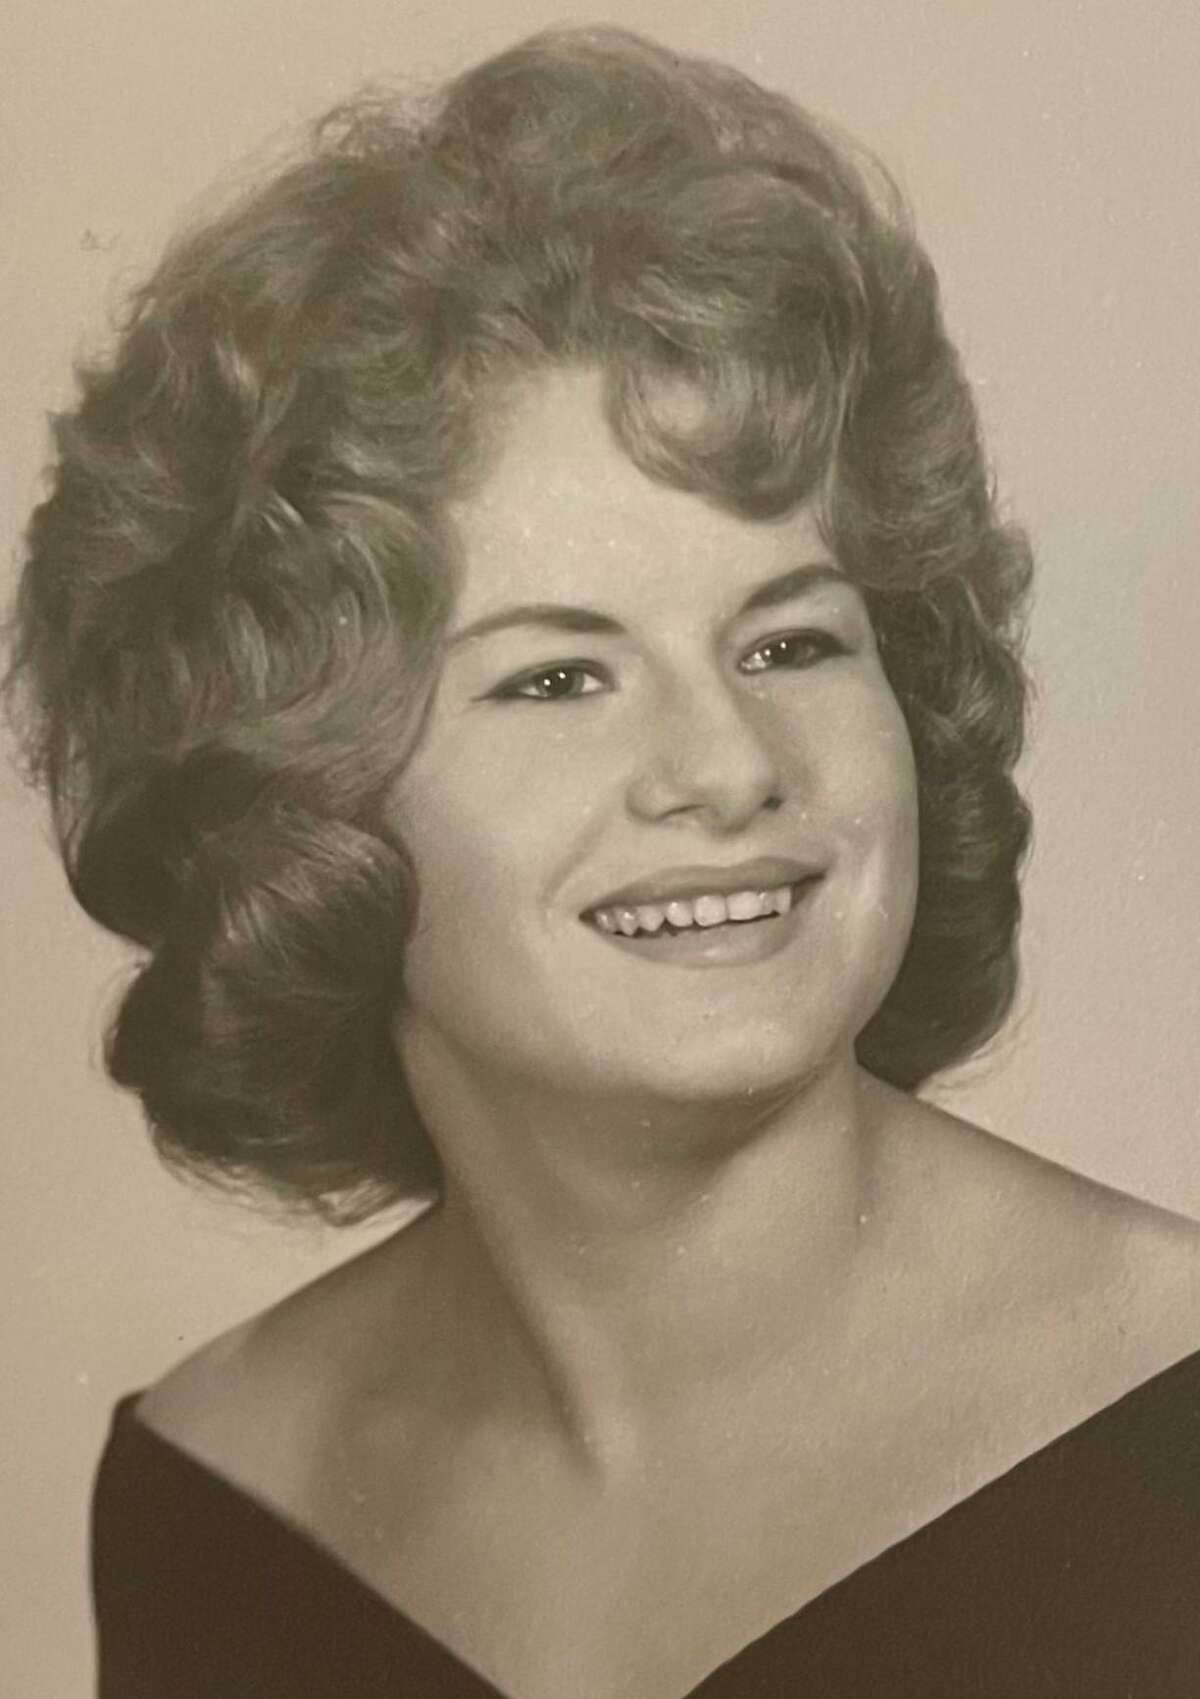 What she may have lacked in stature, Mary-Lou Fitch made up for in heart, service to others and her love of The Woodlands. She volunteered in various capacities in The Woodlands and in Montgomery County over her 30-plus years in the community. She's pictured here in a school yearbook photo.